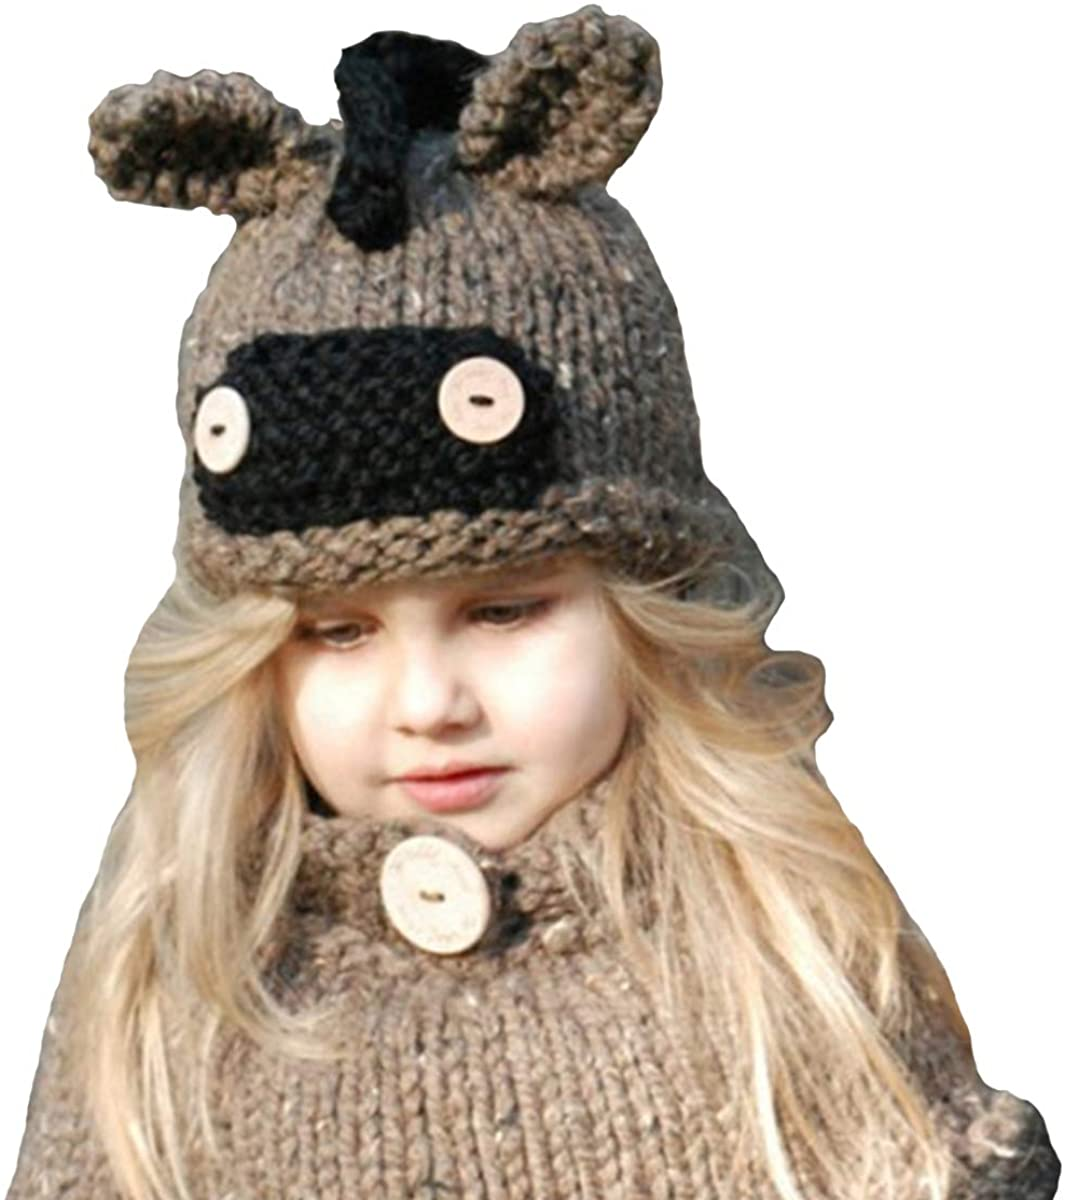 ba knife Kids Winter Knitted Hood Scarf Beanies Ear Warmers Cartoon Fox Rabbit Bear Cloak Woolen Cap Coat 2 Piece Sets